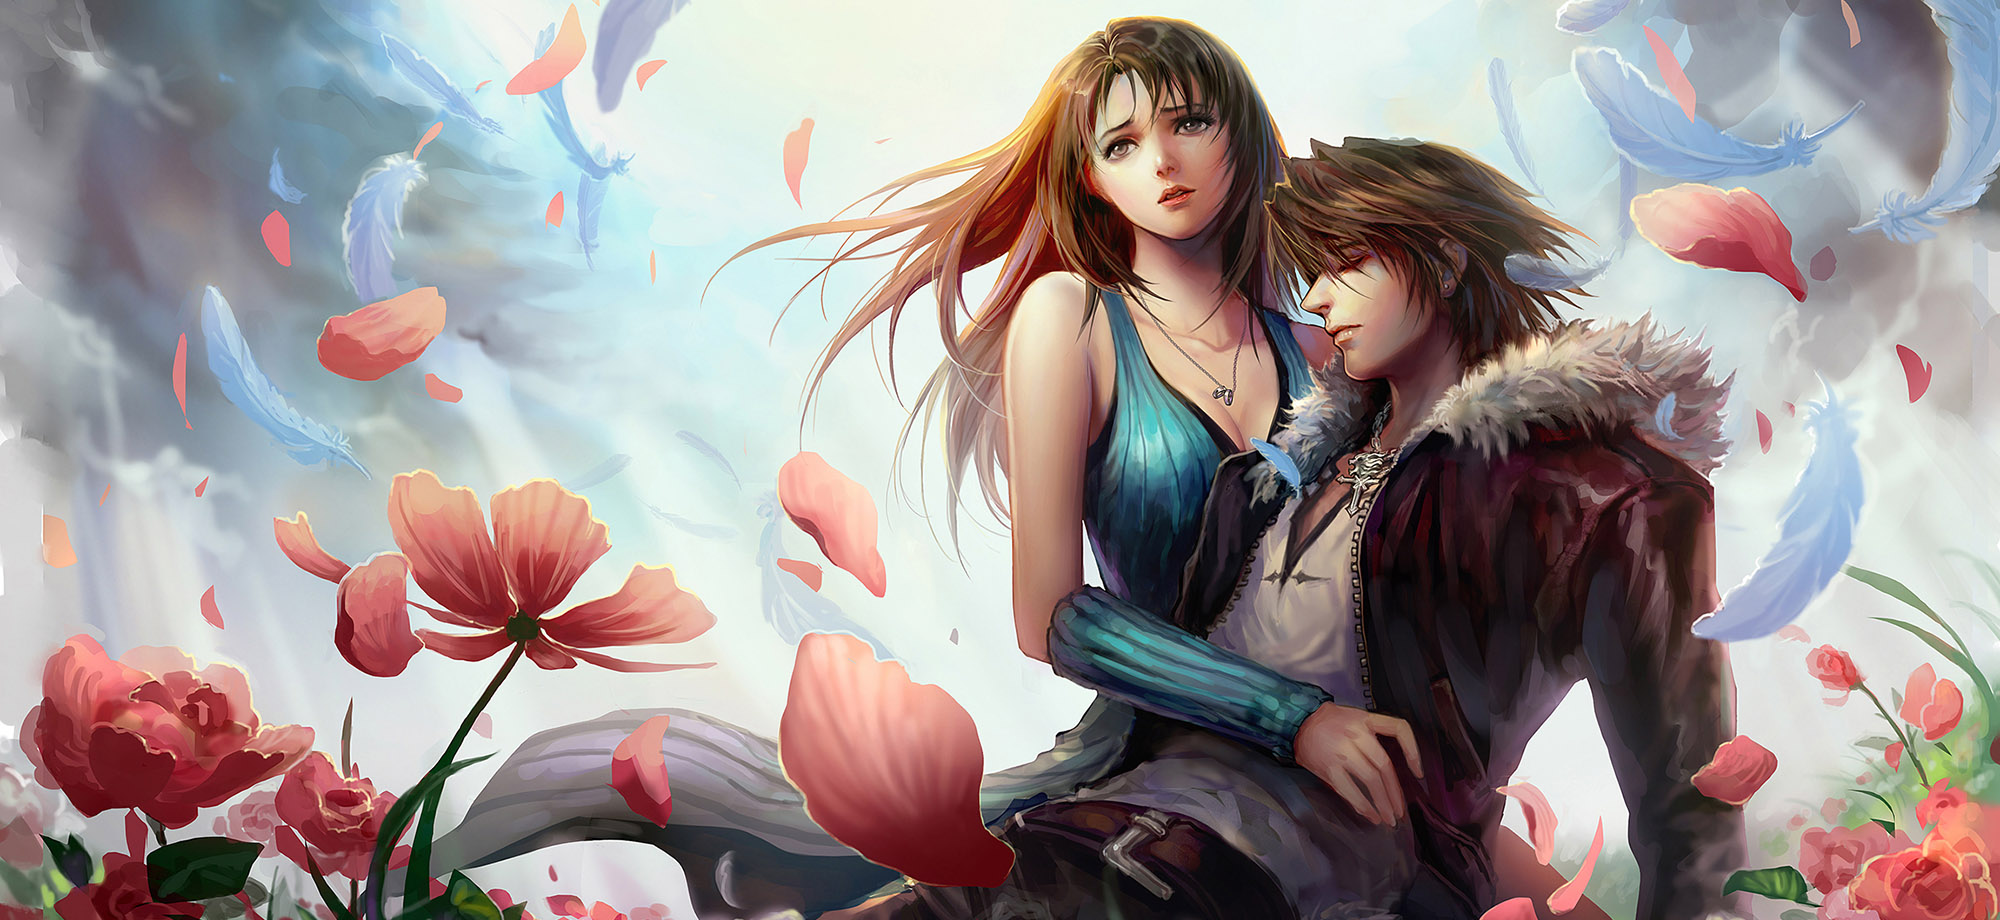 Final Fantasy 8 art 02